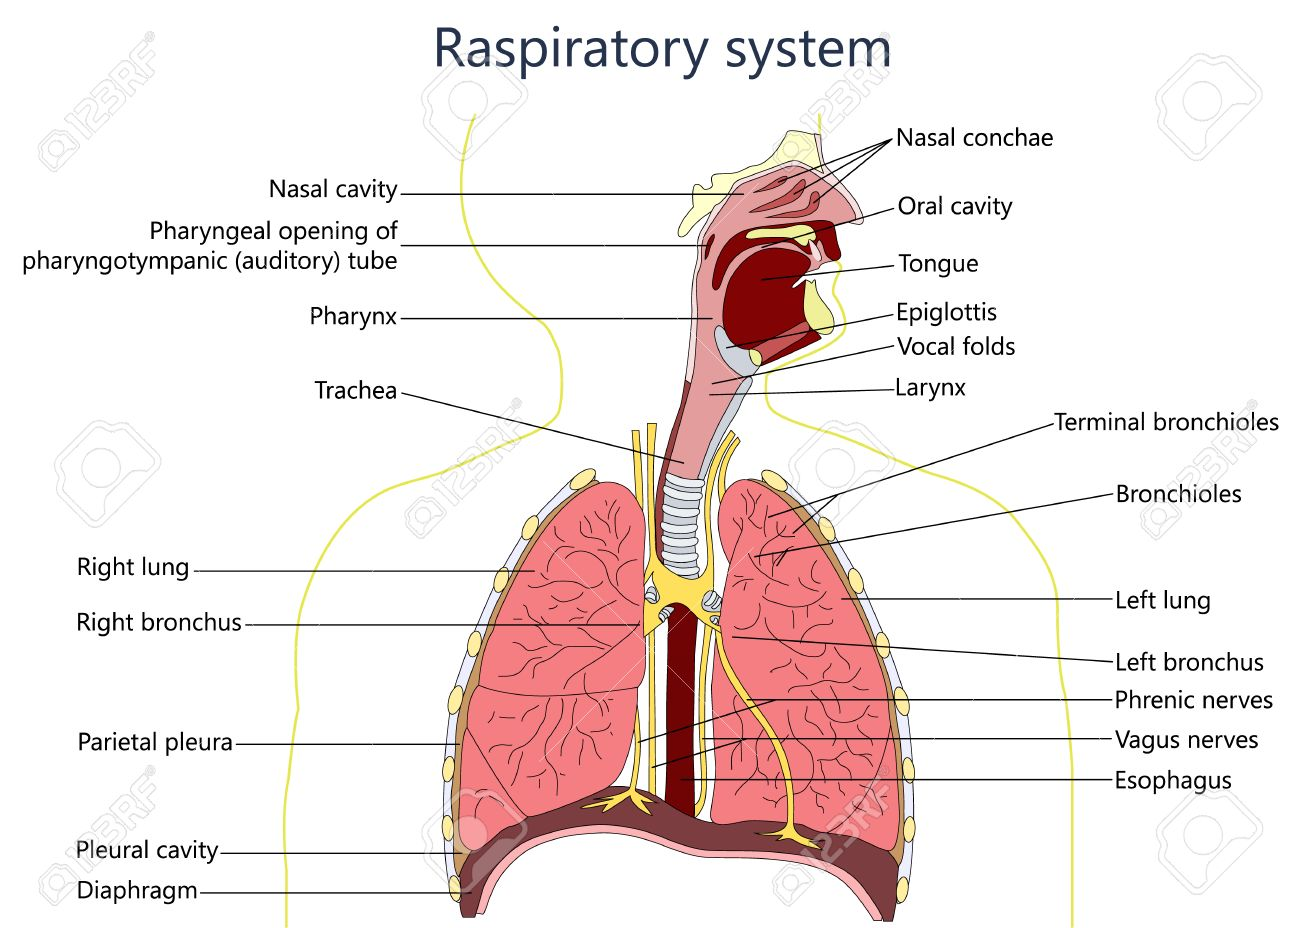 Anatomy Respiratory System Diagram - Trusted Wiring Diagram •